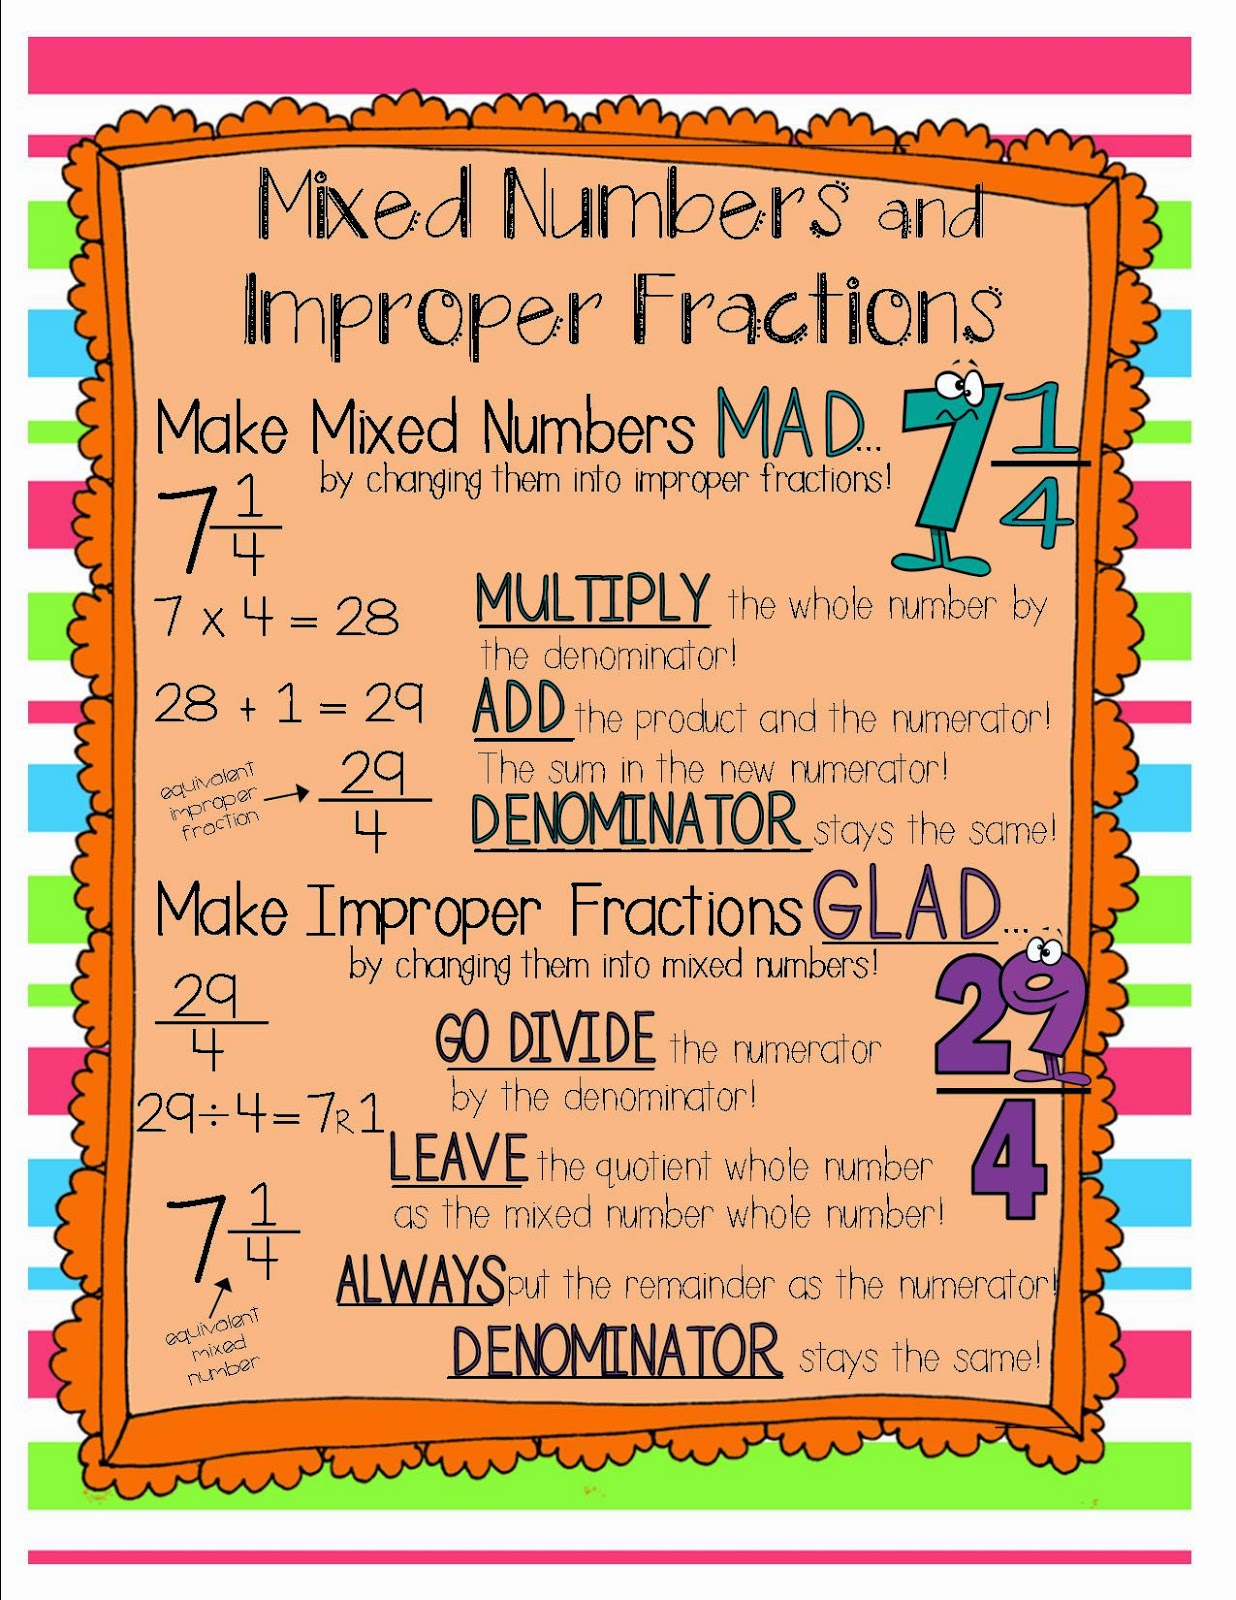 http://www.teacherspayteachers.com/Product/Improper-Fractions-Poster-1174263